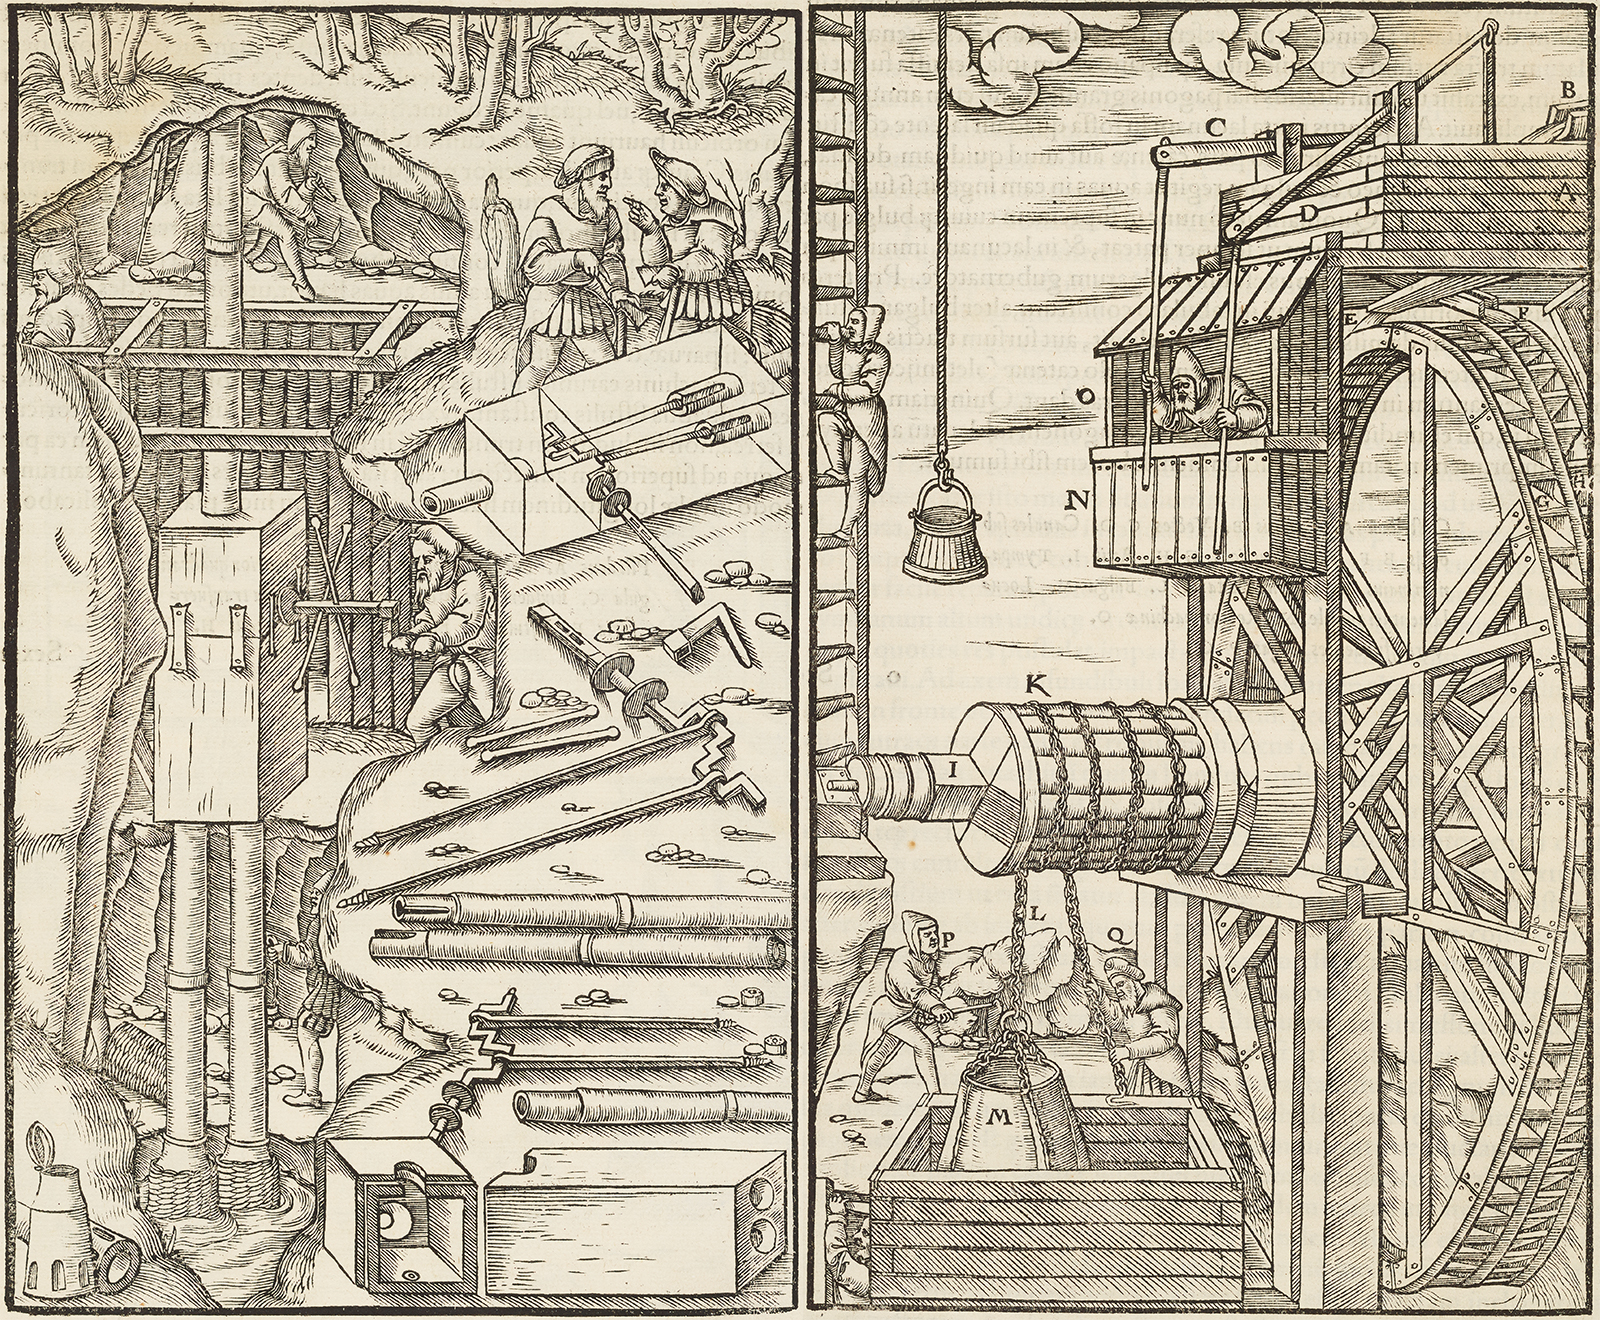 Black and white woodcut of mining scenes